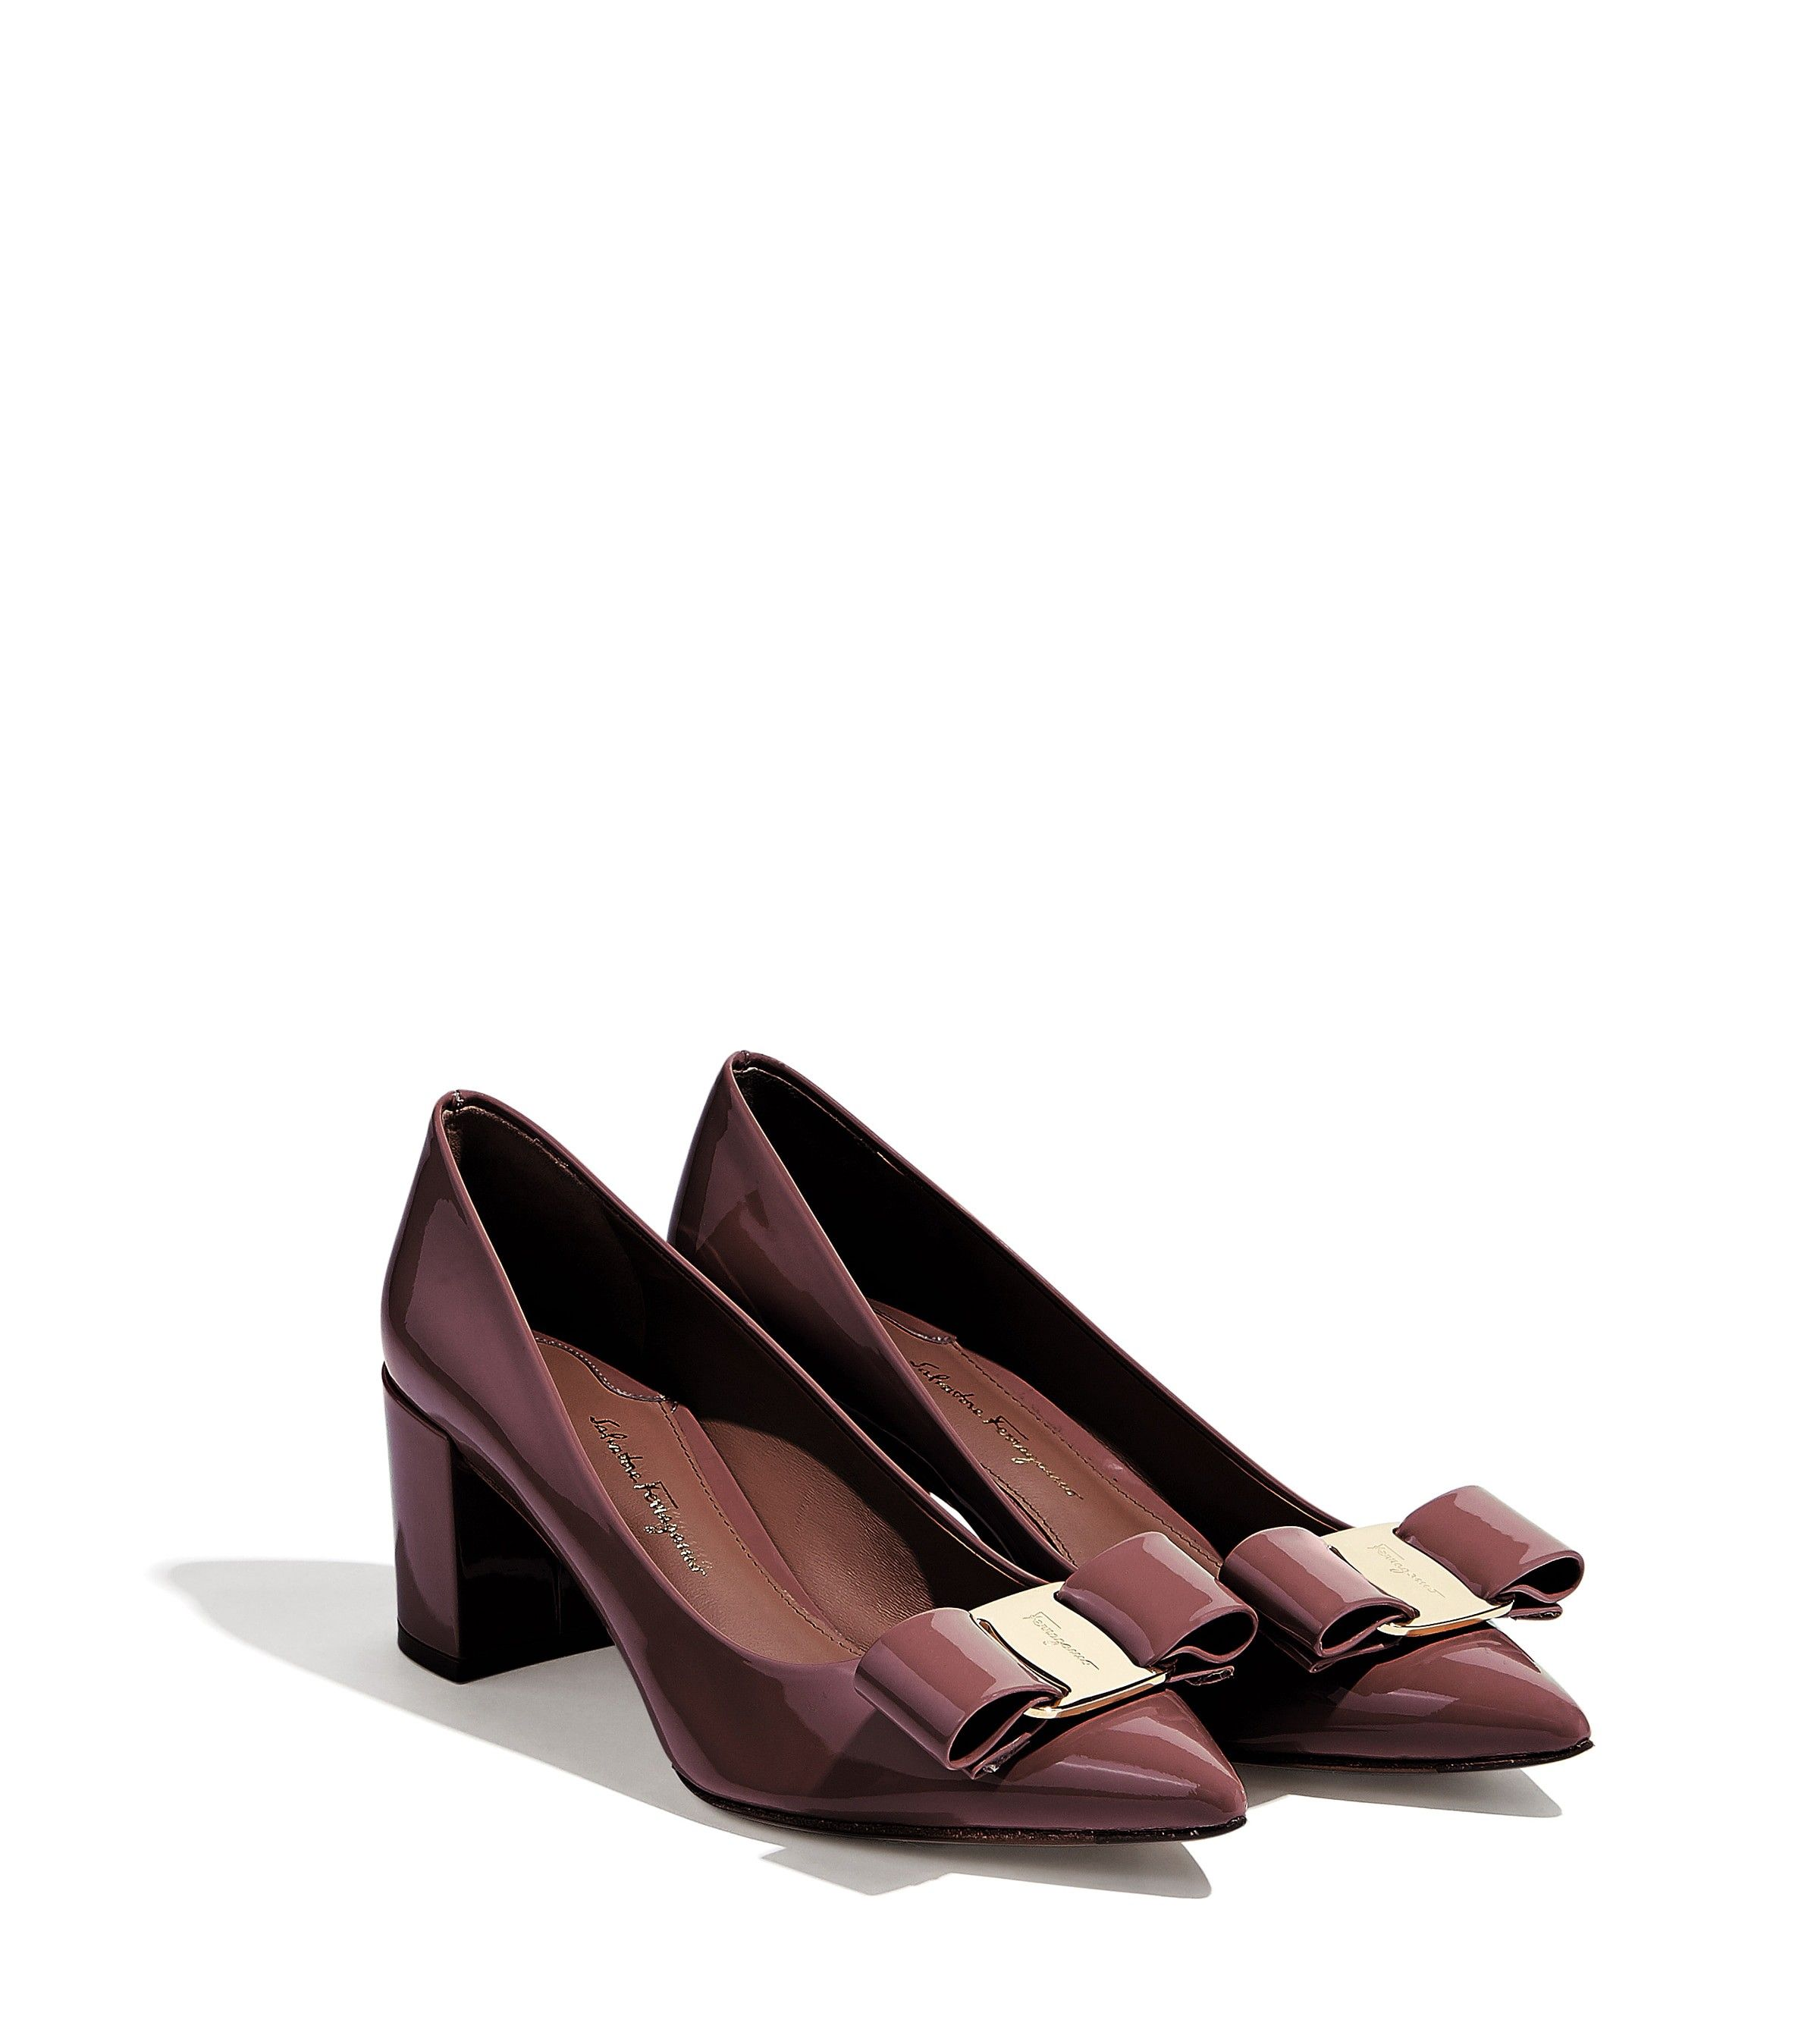 cd79046c3f03 Salvatore Ferragamo Big Vara Bow Pump Shoe - 11.0 B (Standard)